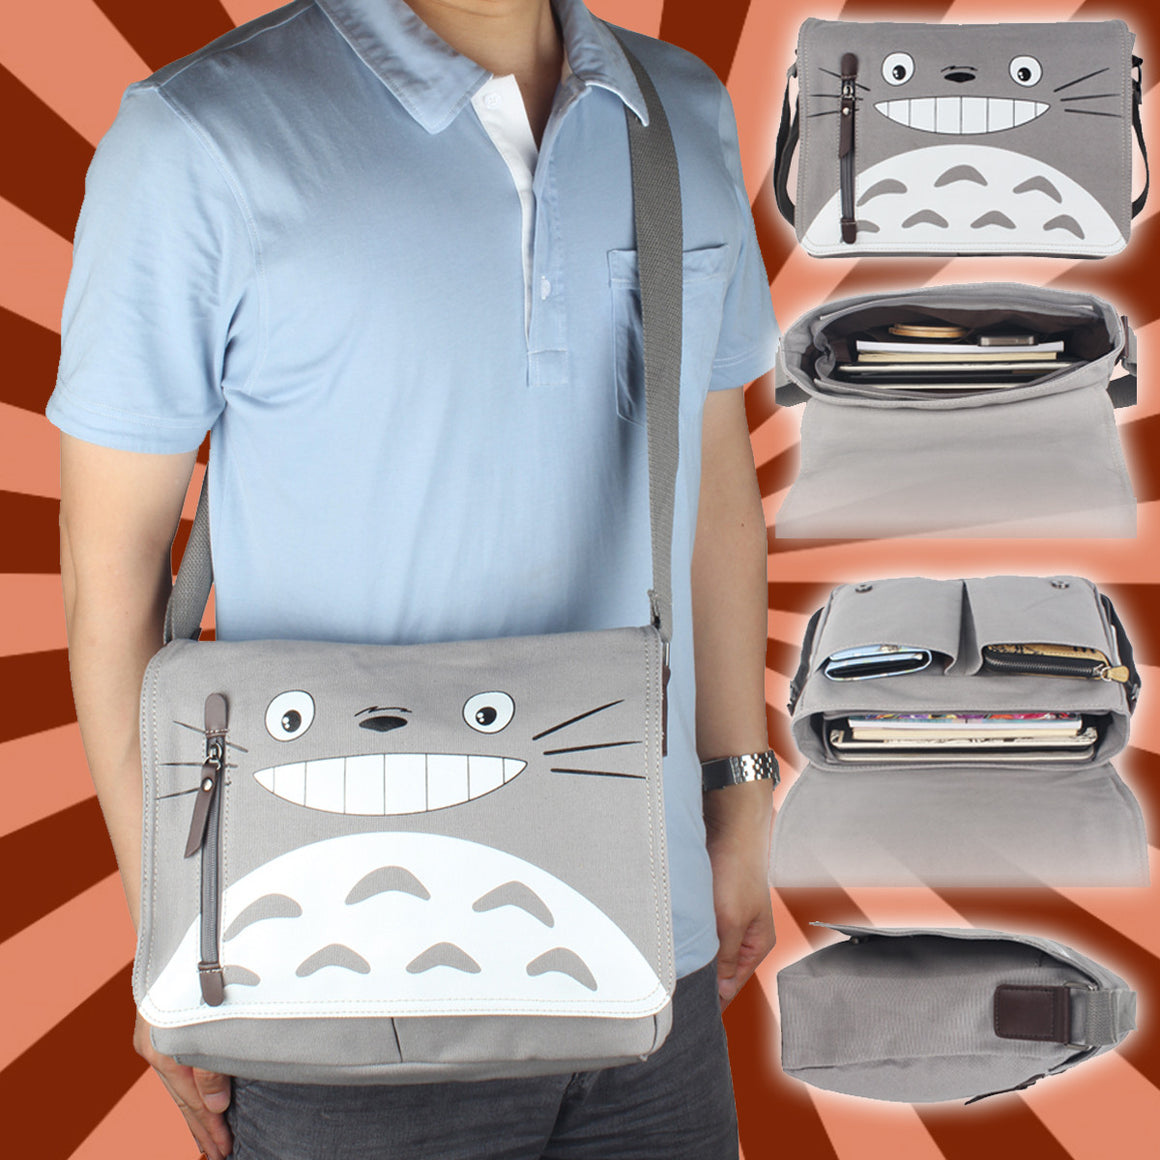 [NEW] My Neighbour Totoro Sling Messenger Bag - Free Shipping